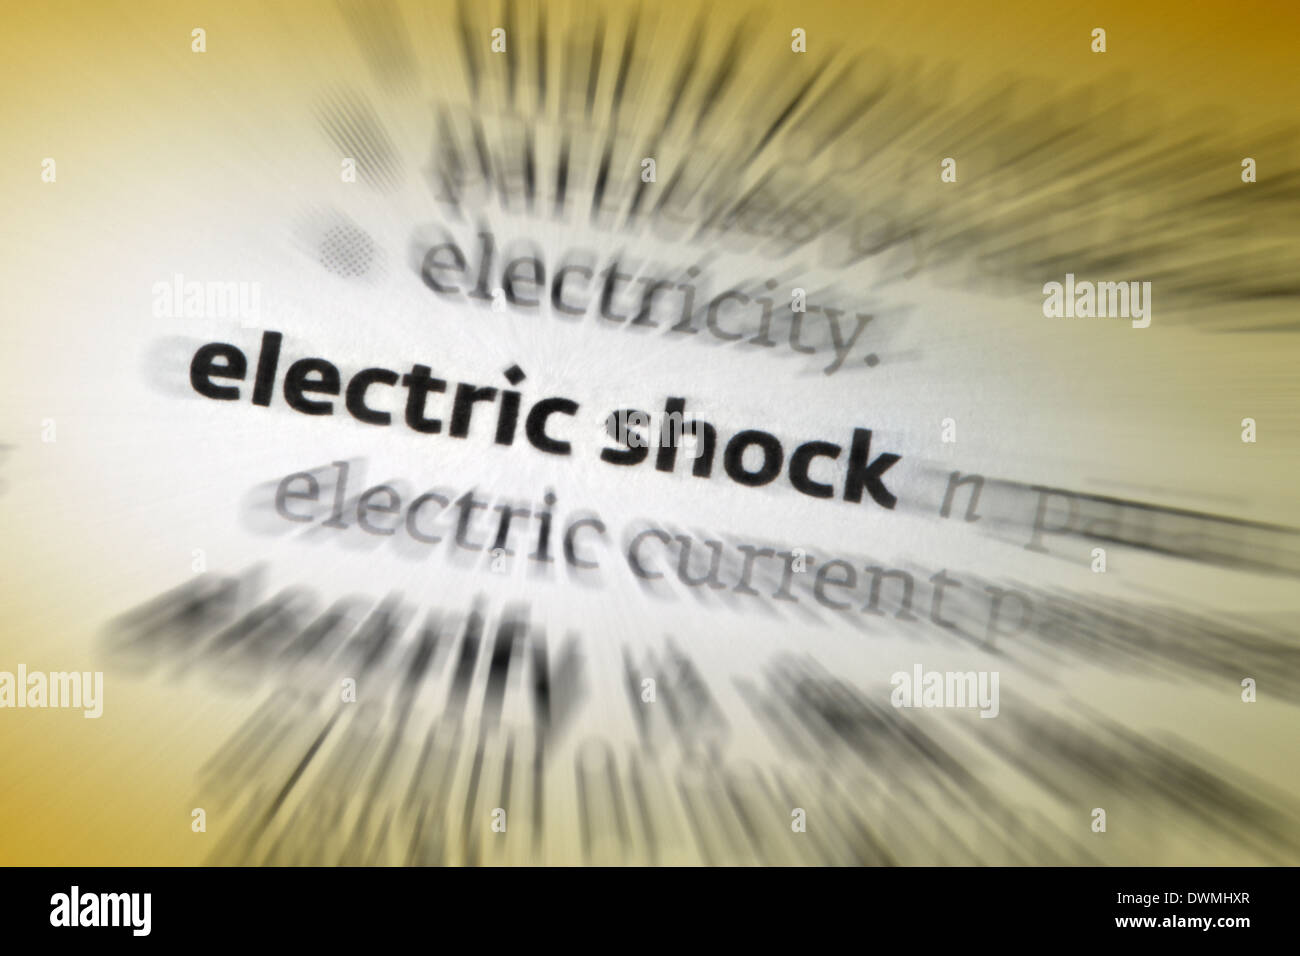 Electric Shock - Stock Image